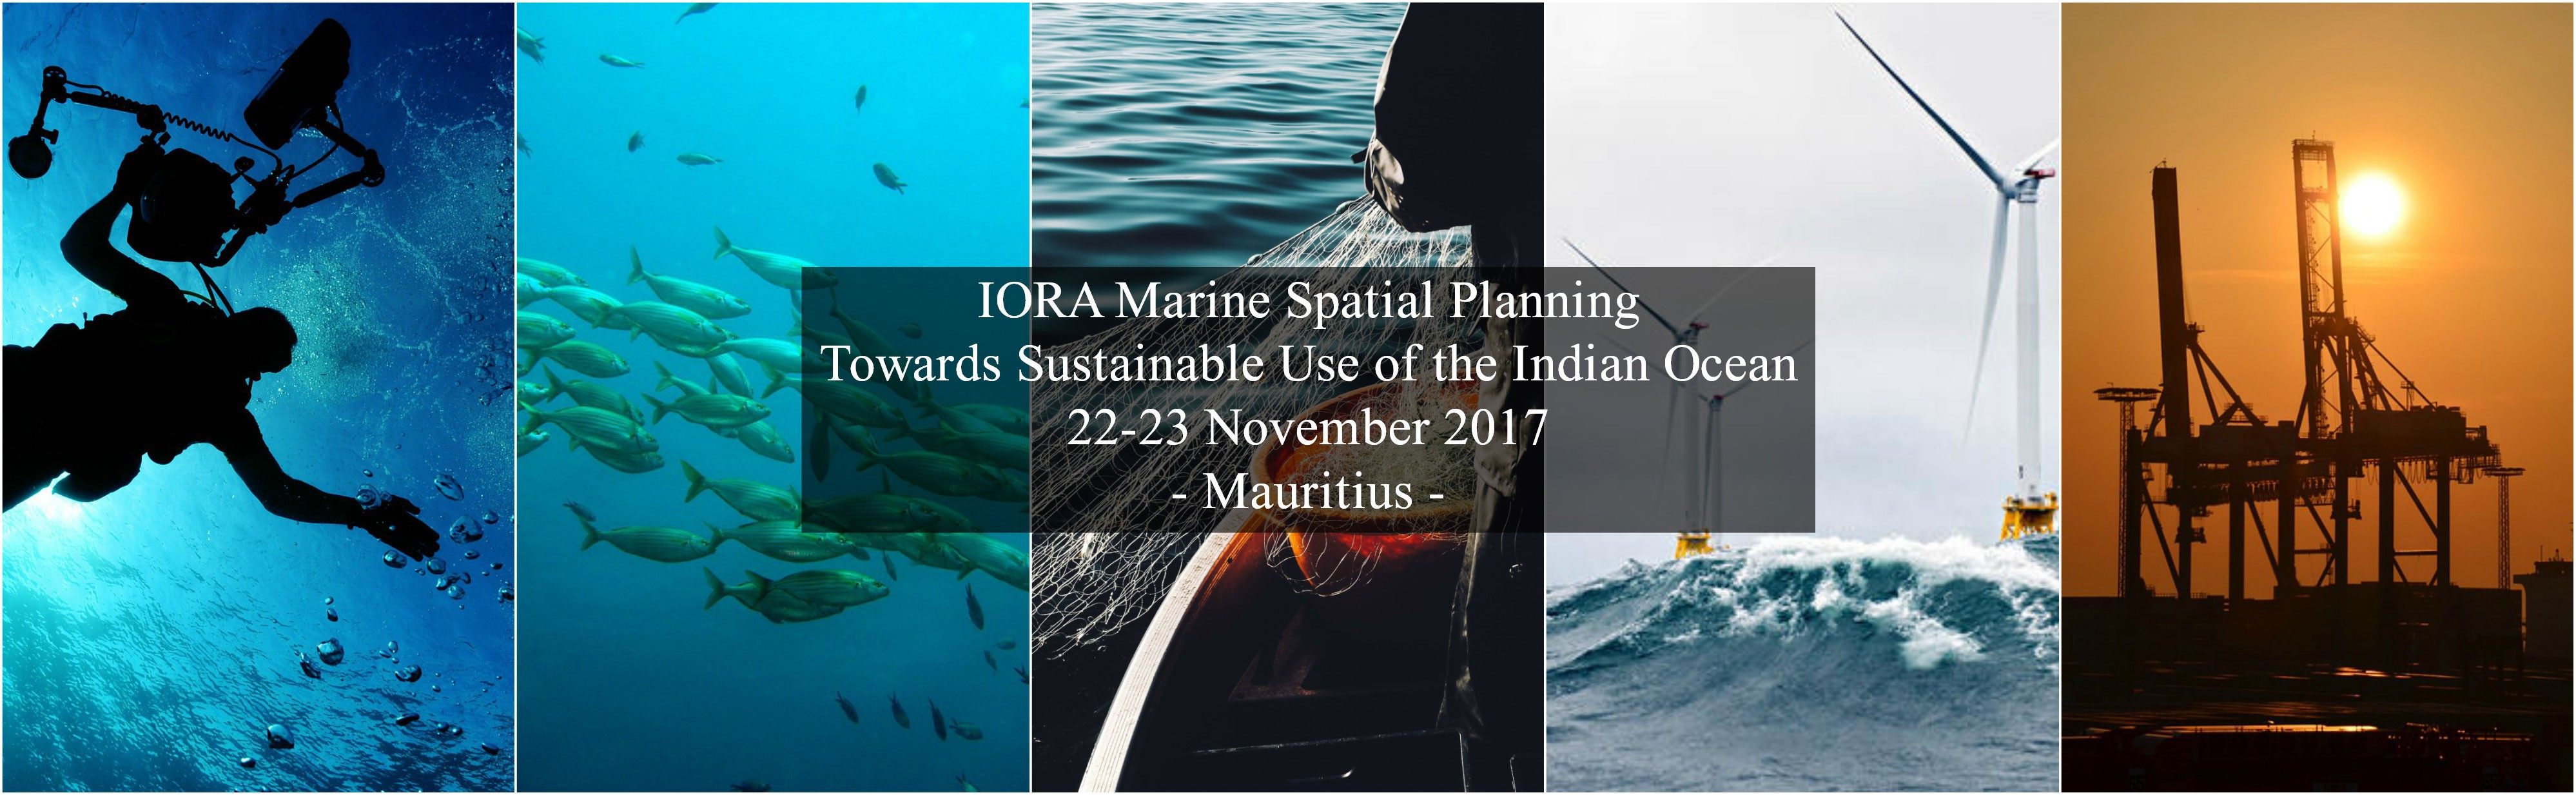 IORA Conference on Marine Spatial Planning